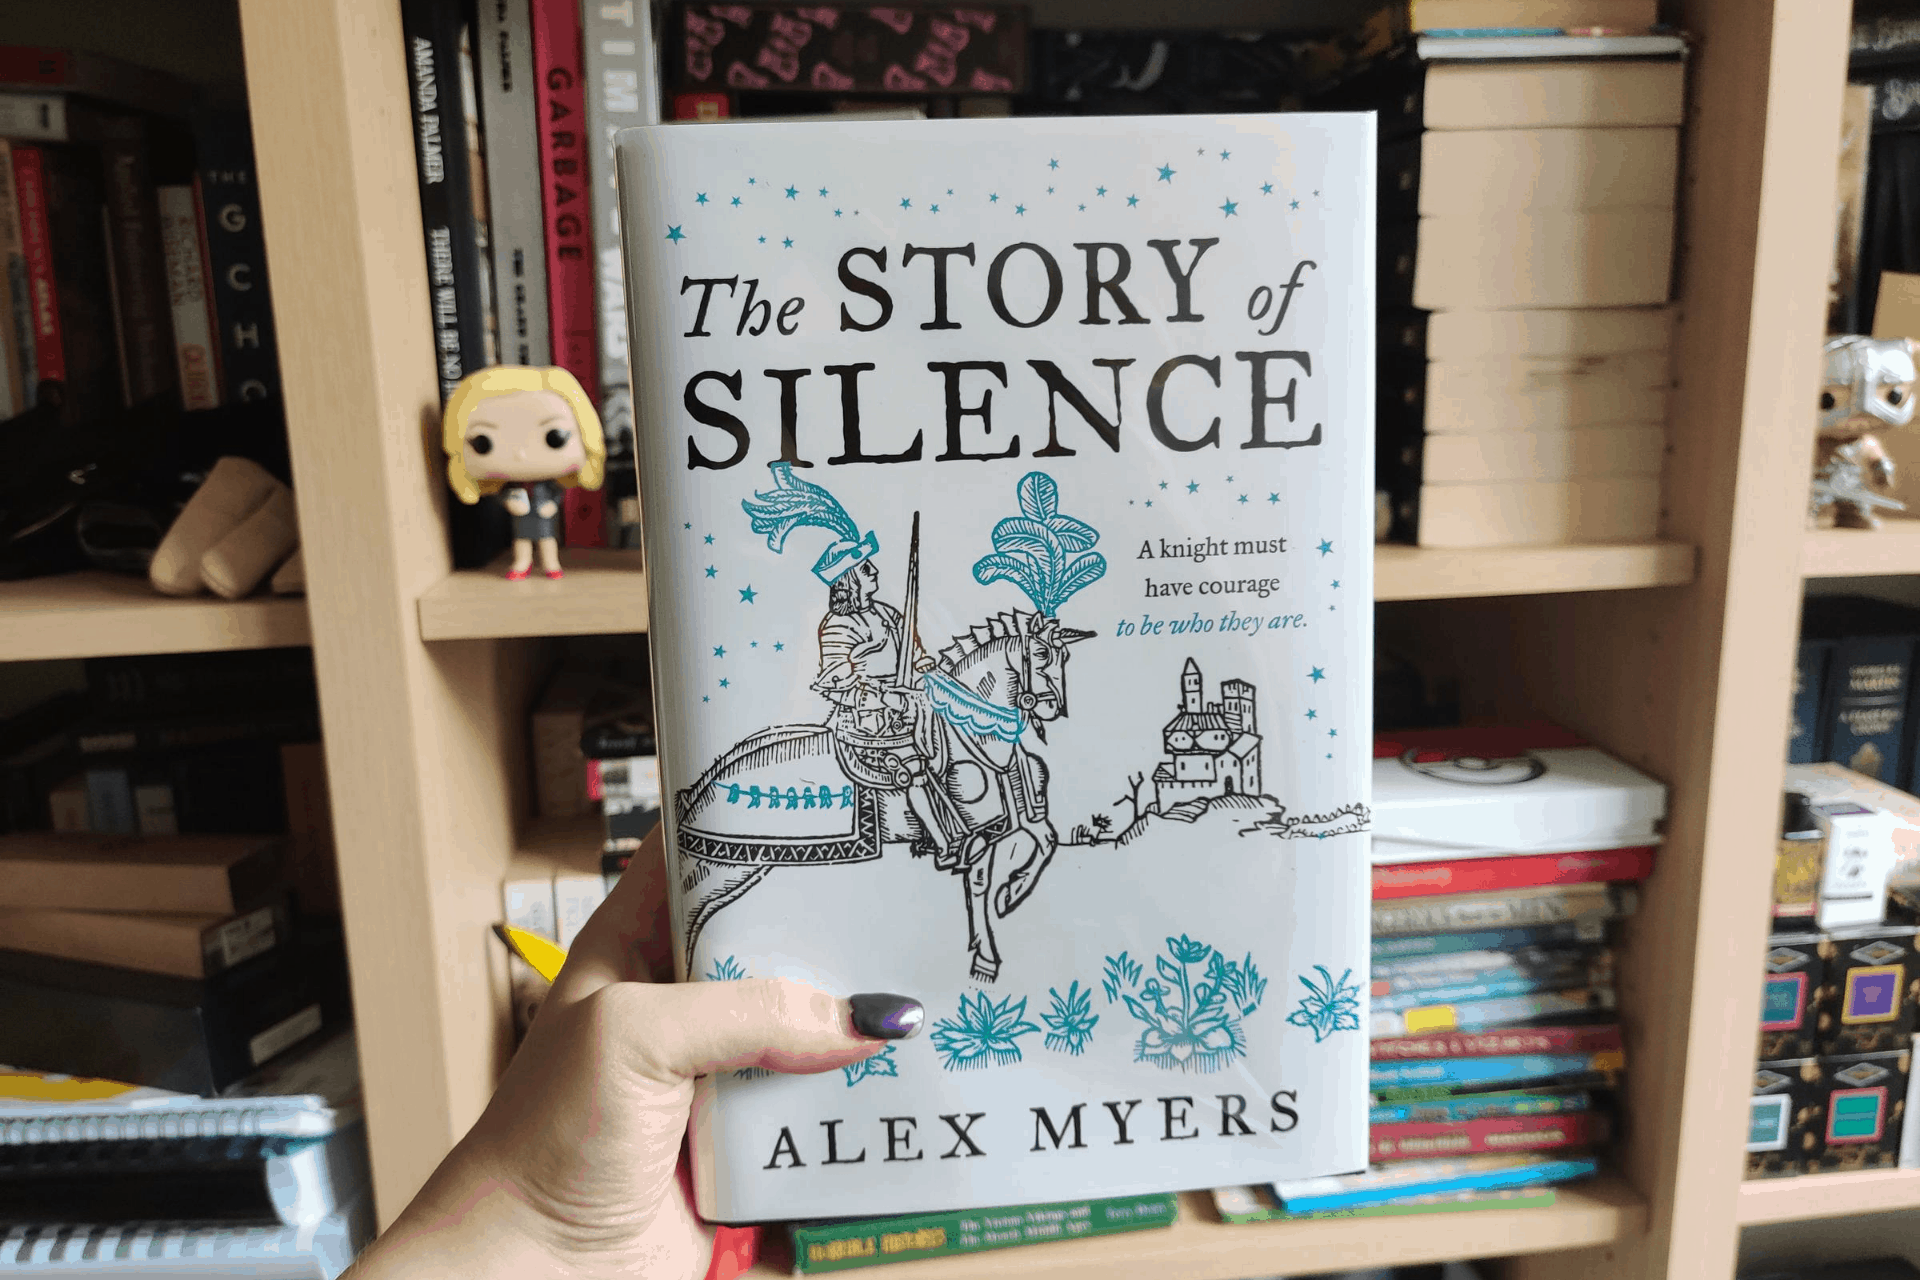 The cover of The Story of Silence by Alex Myers